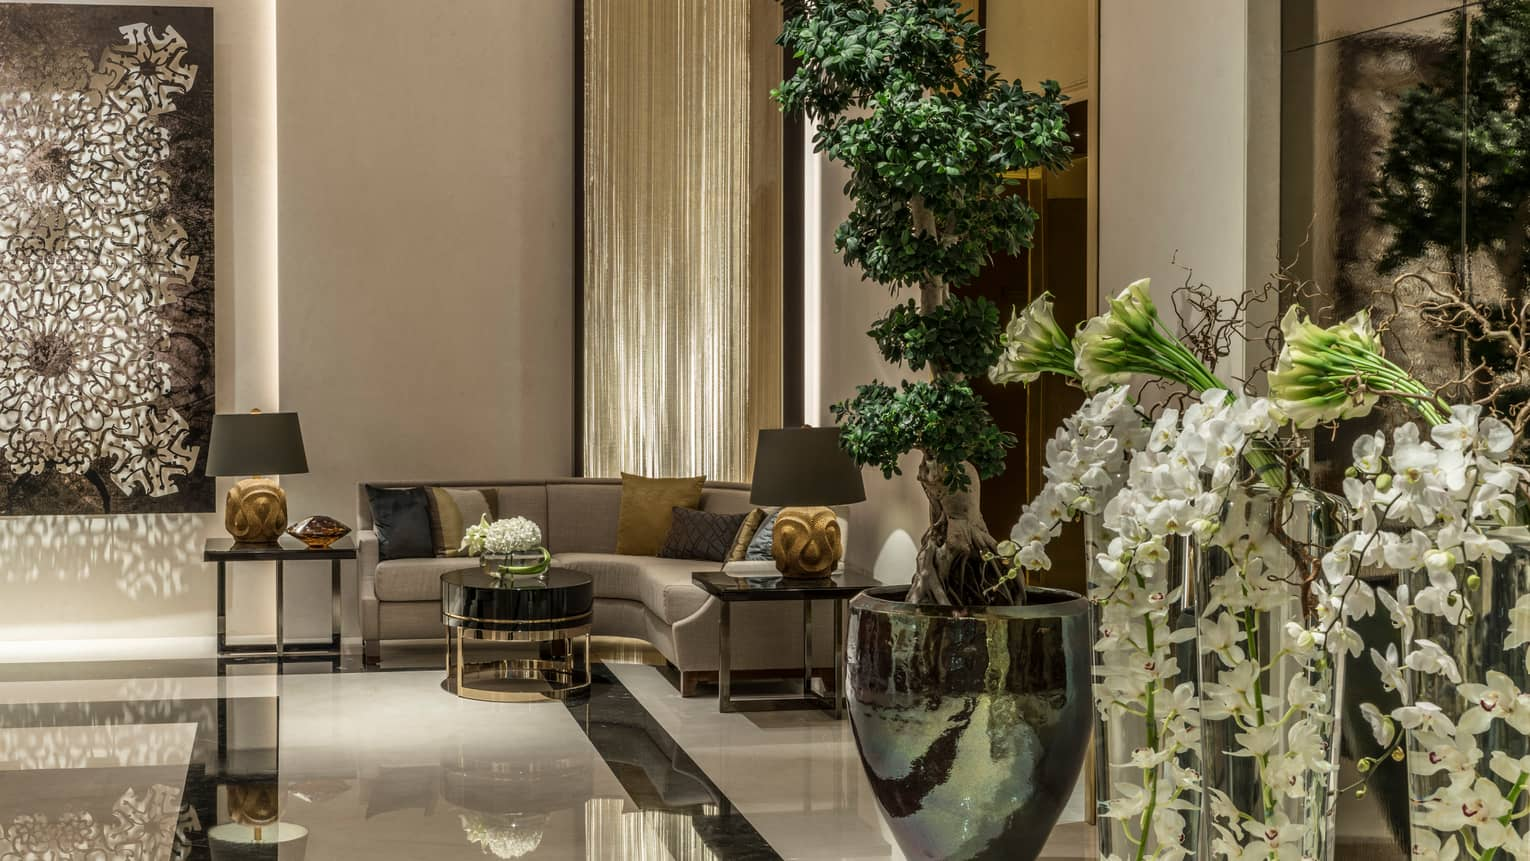 Lobby with curved corner sofa, large vases with fresh flowers, Arabic decor